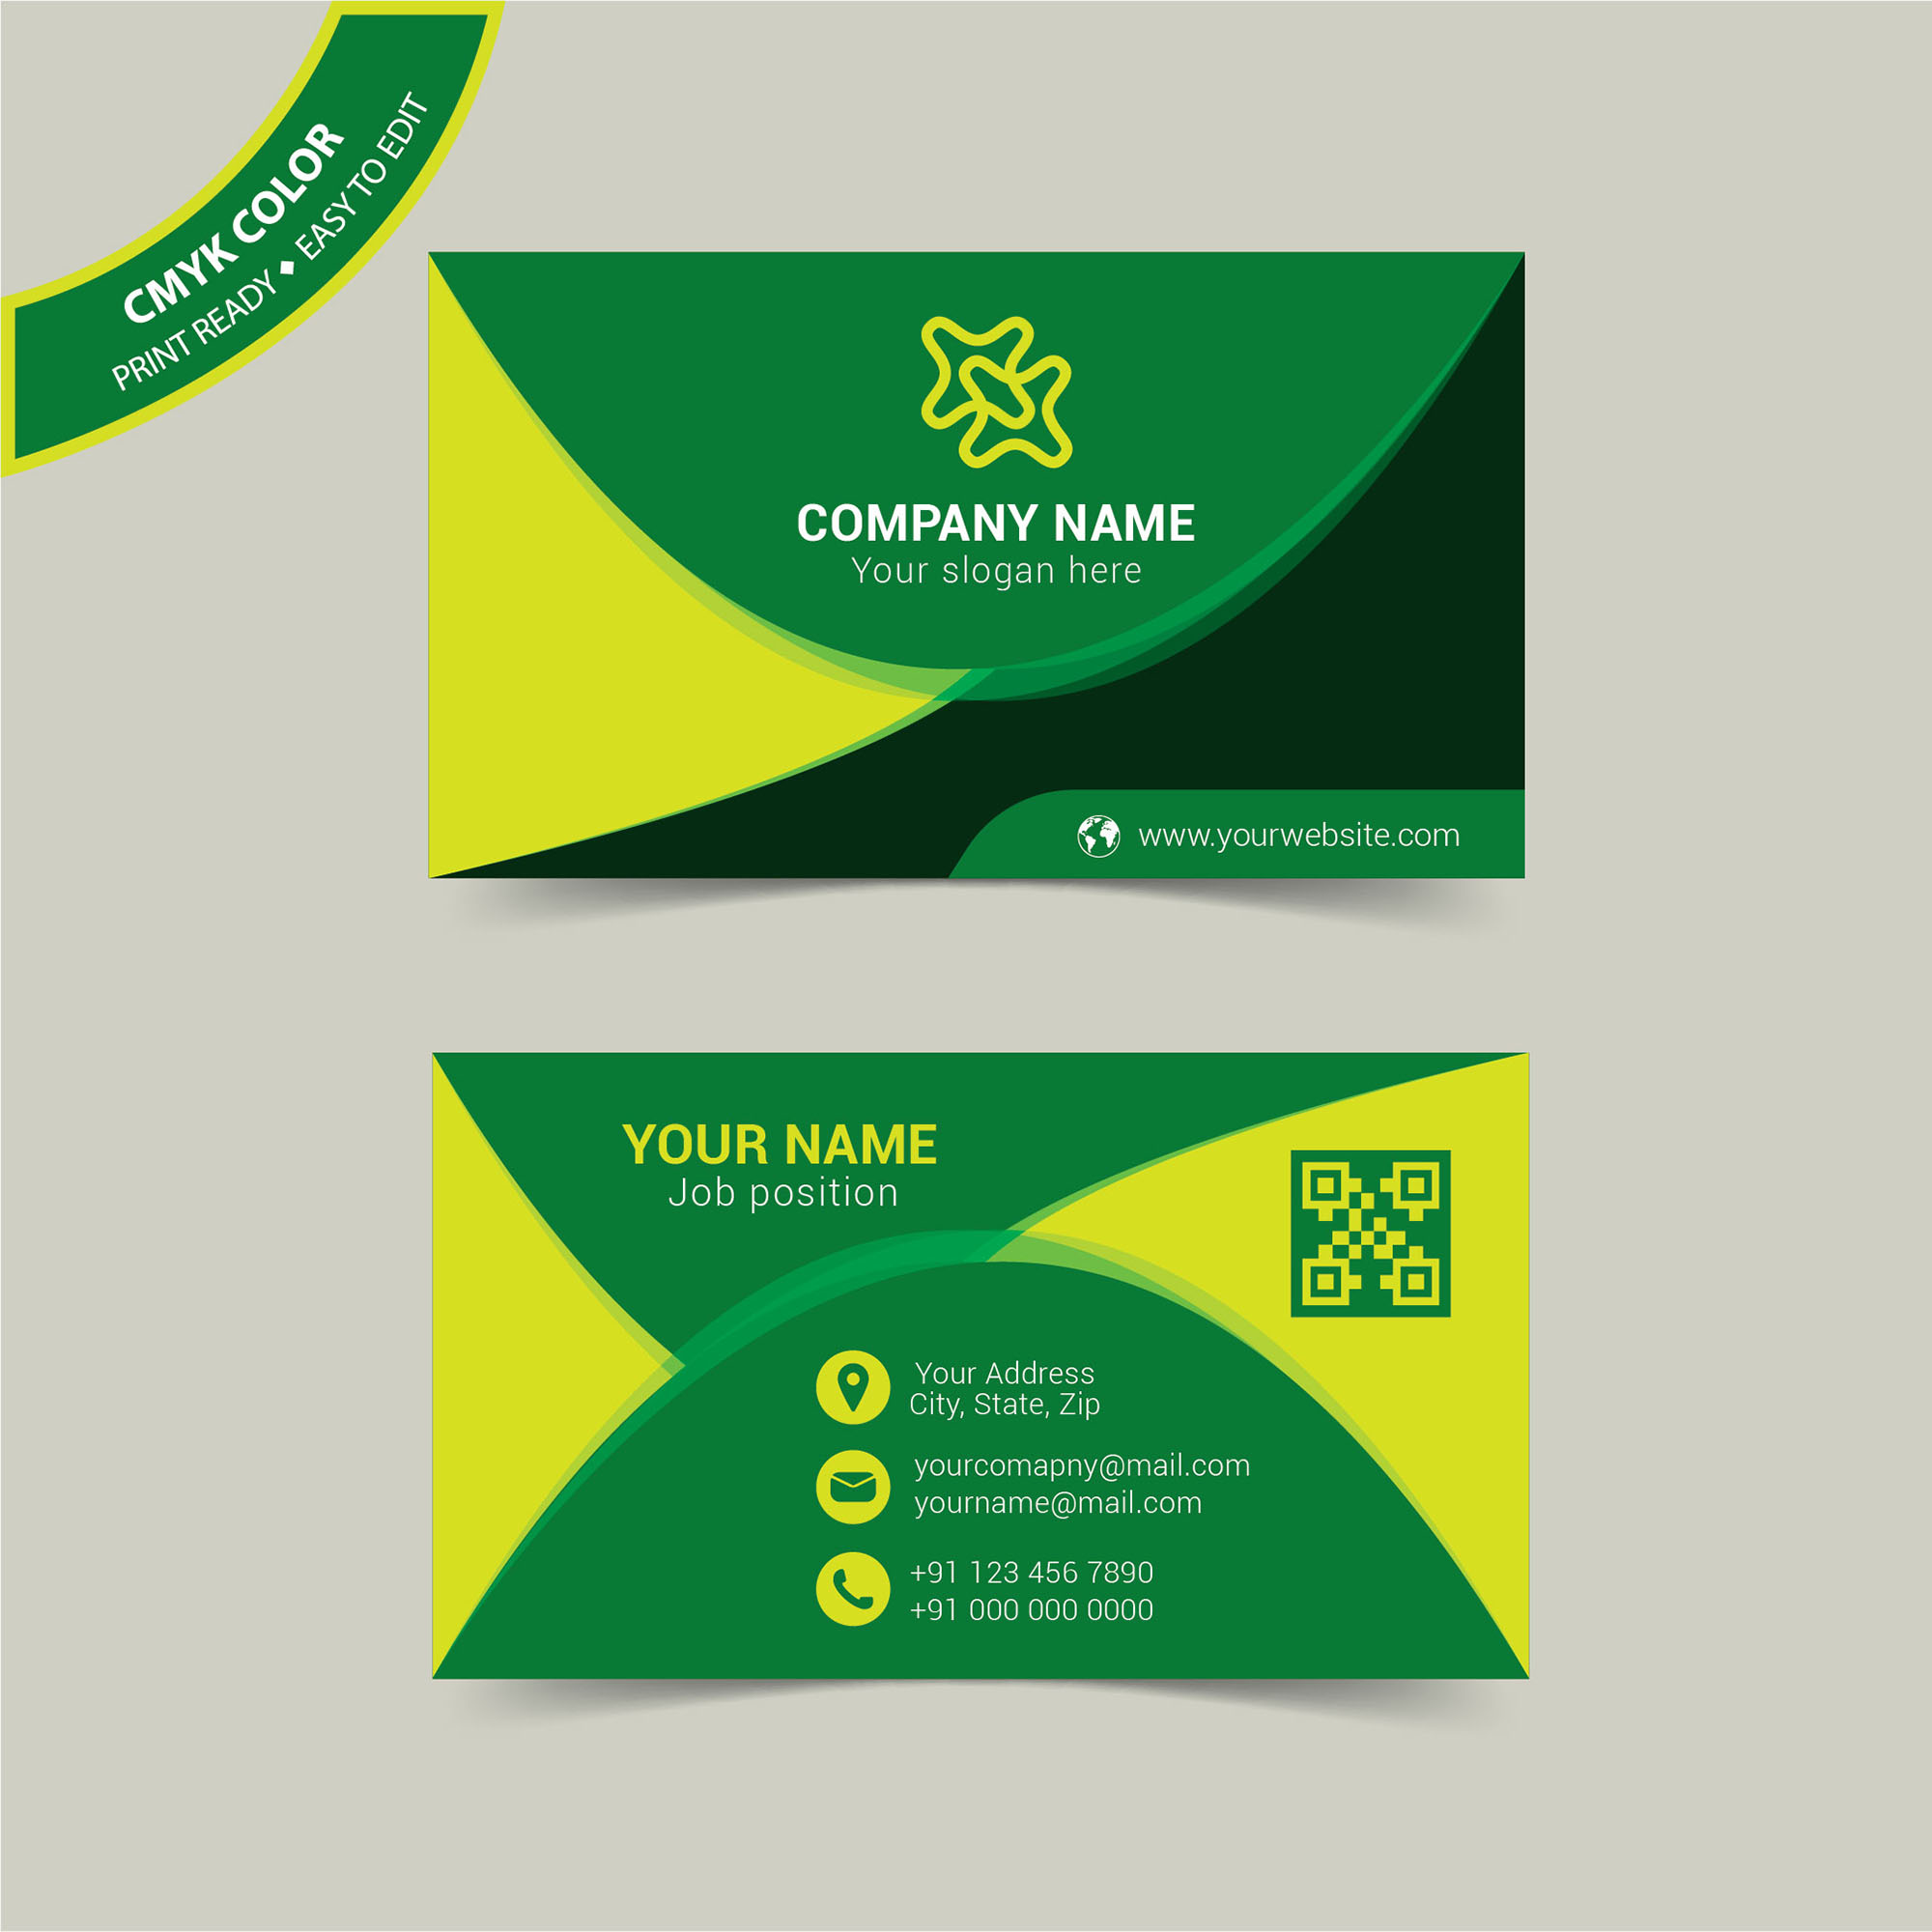 Personal Business Card Free Download Wisxicom - Personal business cards template